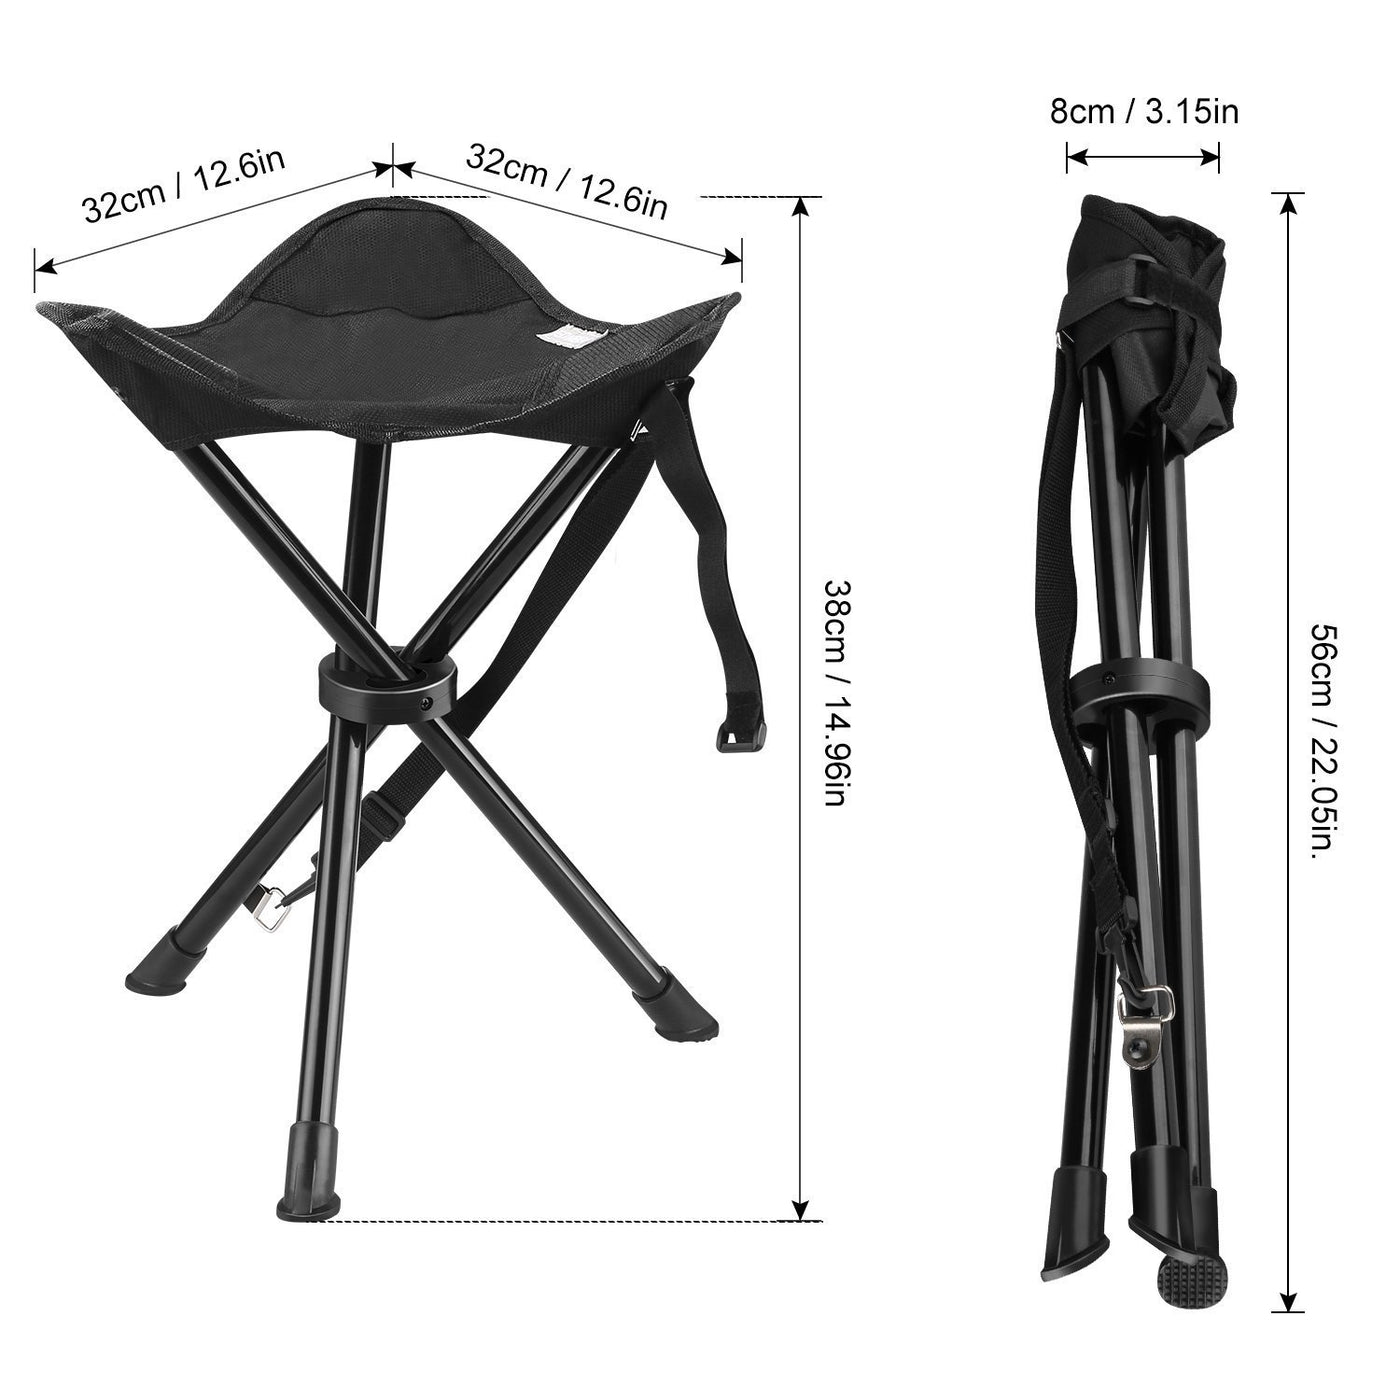 Portable Tripod Stool Folding Chair Enkeeo